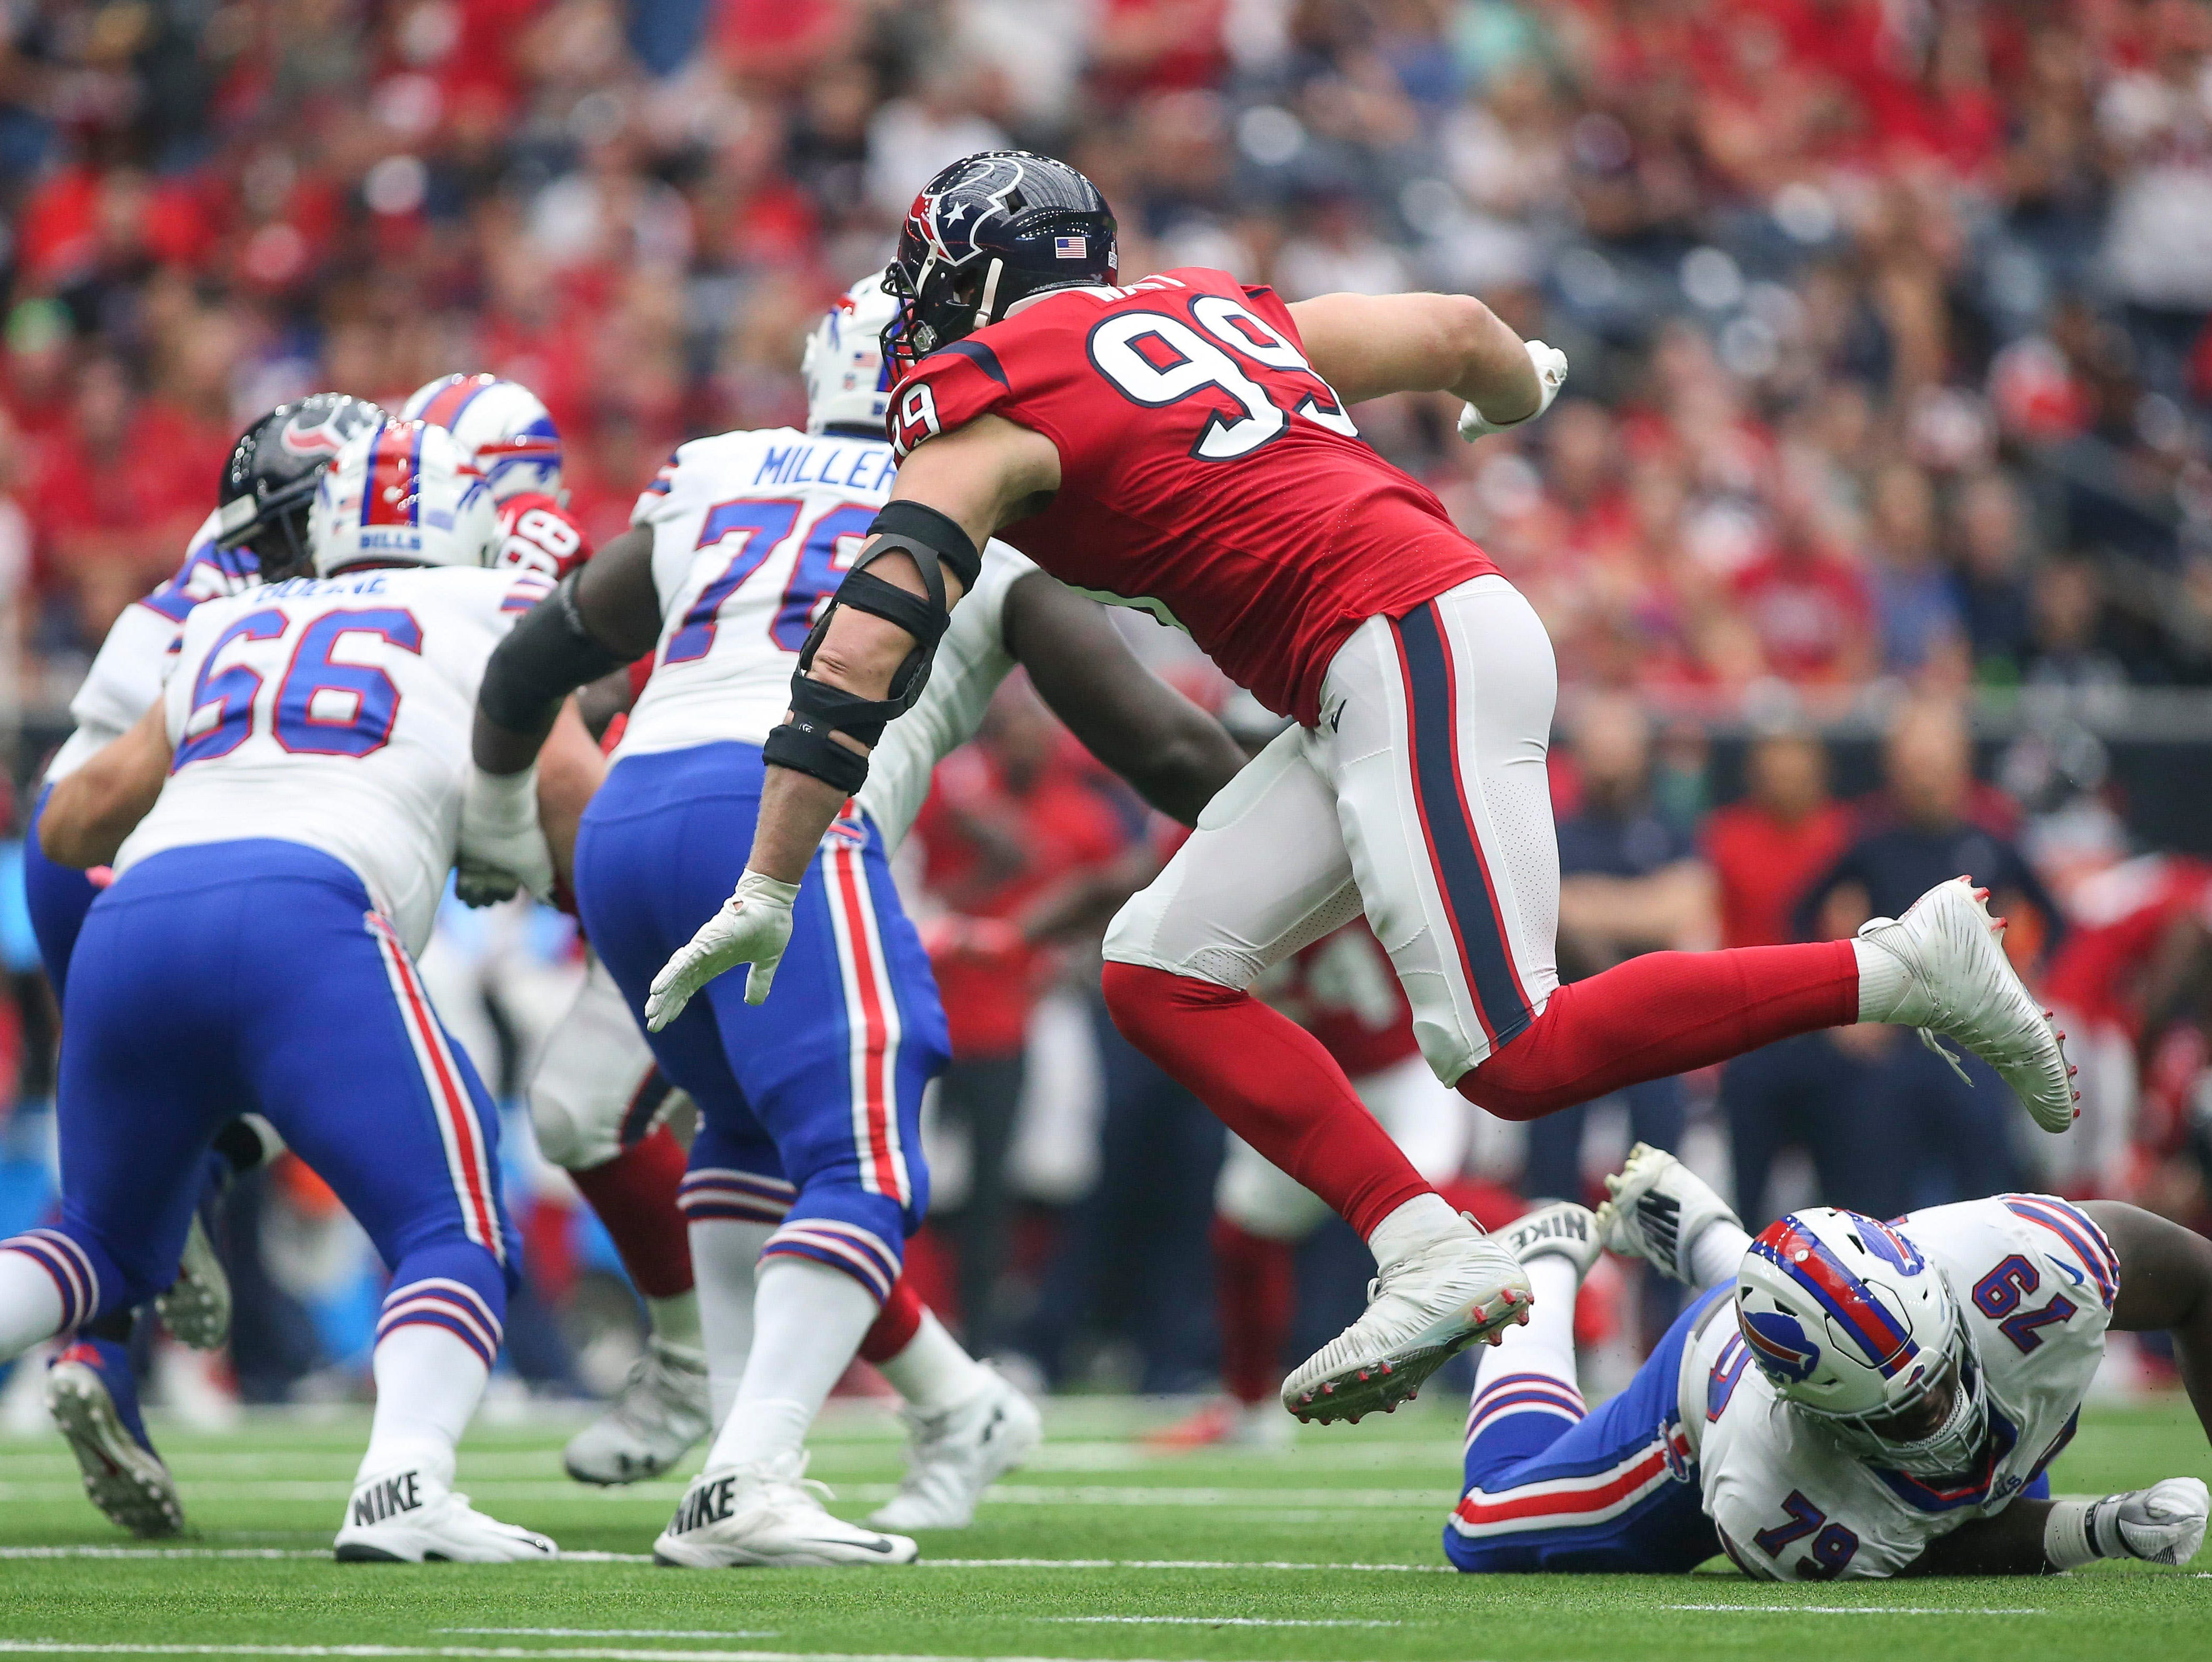 Oct 14, 2018; Houston, TX, USA; Houston Texans defensive end J.J. Watt (99) leaps as he applies defensive pressure during the first quarter against the Buffalo Bills at NRG Stadium. Mandatory Credit: Troy Taormina-USA TODAY Sports